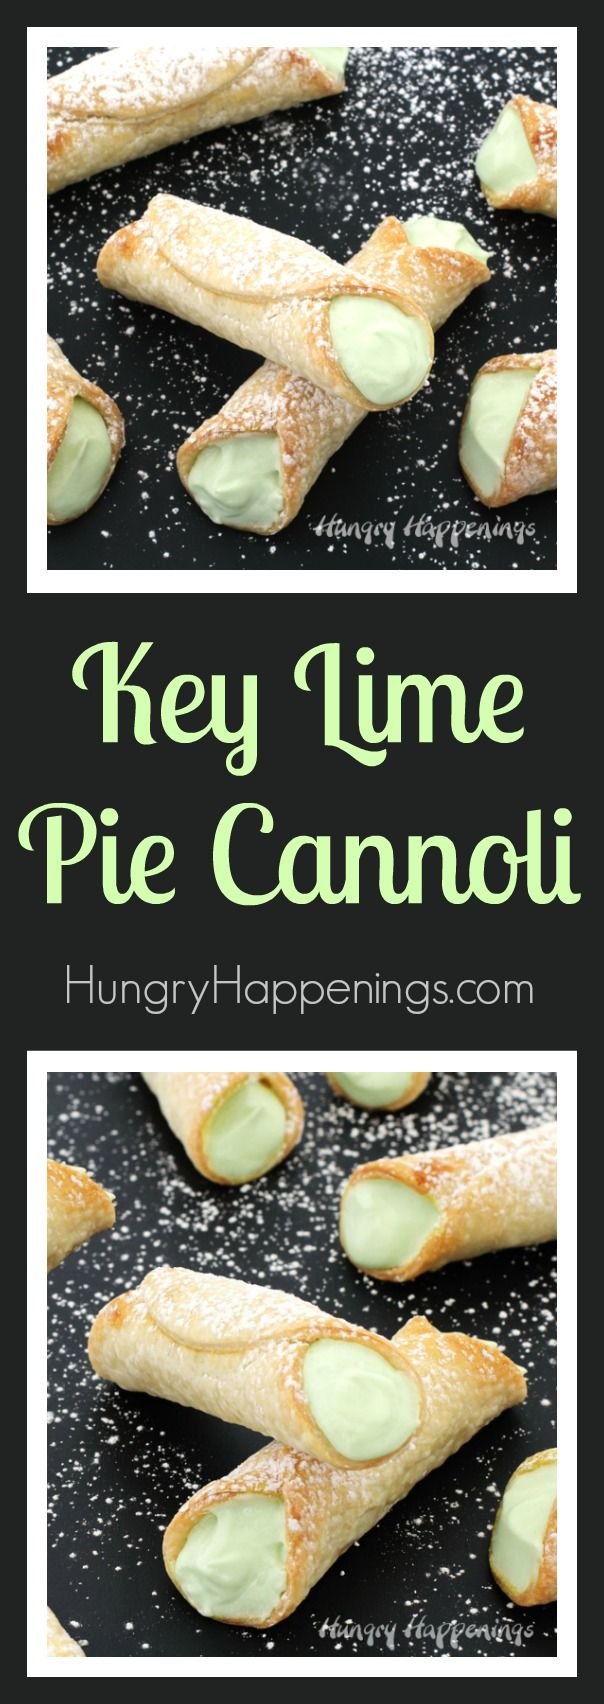 Give a classic summer recipe a fun twist. These sweet and tart Key Lime Pie Cannoli are simple to make using just 4 ingredients and don't need to be cut into slices when serving so they are perfect for an outdoor party, a pot-luck, or even a bridal shower.